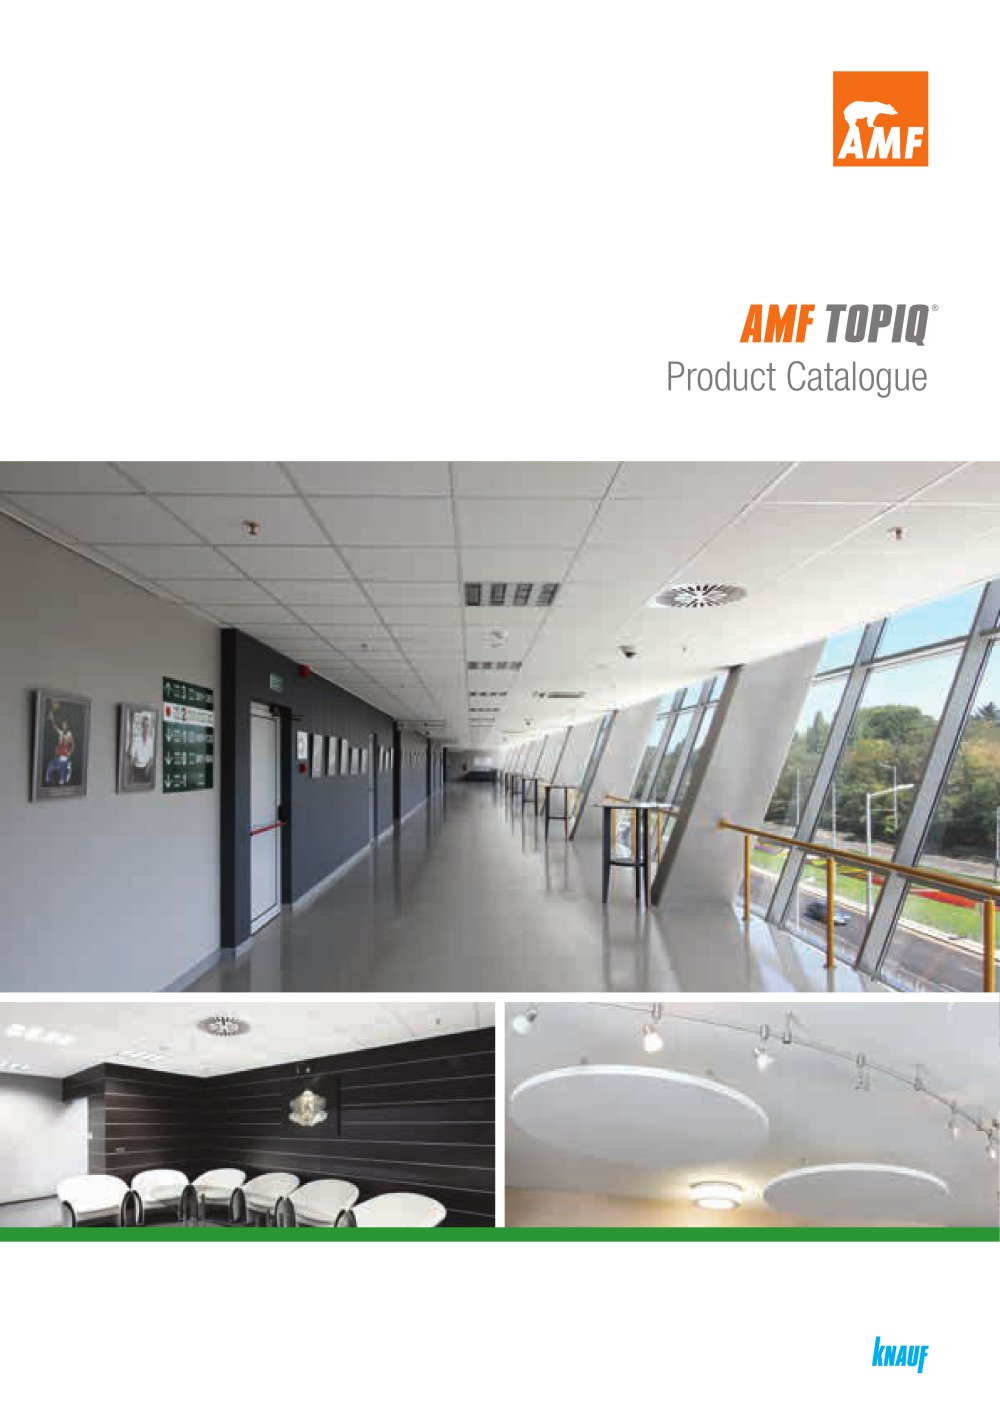 Amf topiq product catalogue knauf amf pdf catalogues amf topiq product catalogue 1 16 pages dailygadgetfo Choice Image